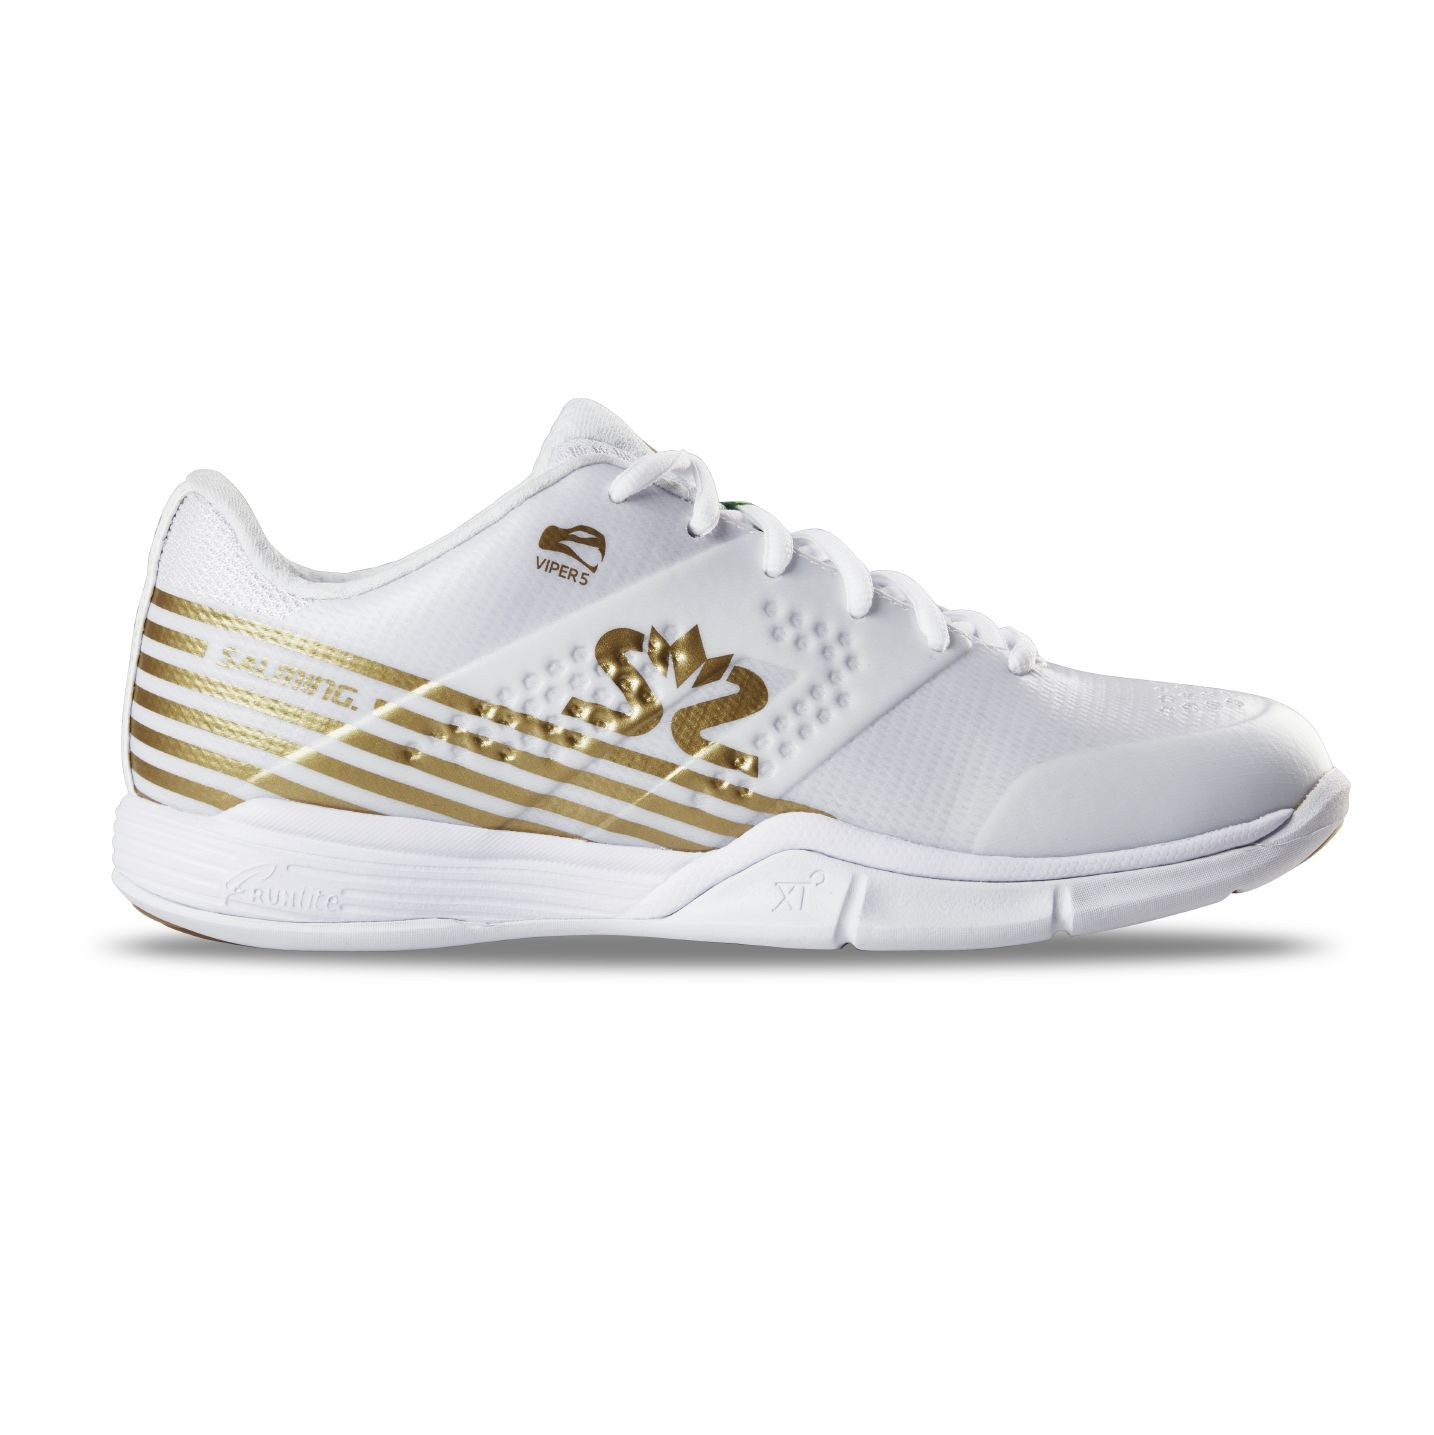 Salming Viper 5 Shoe Women White/Gold 7,5 UK - 41 1/3 EUR - 26,5 cm